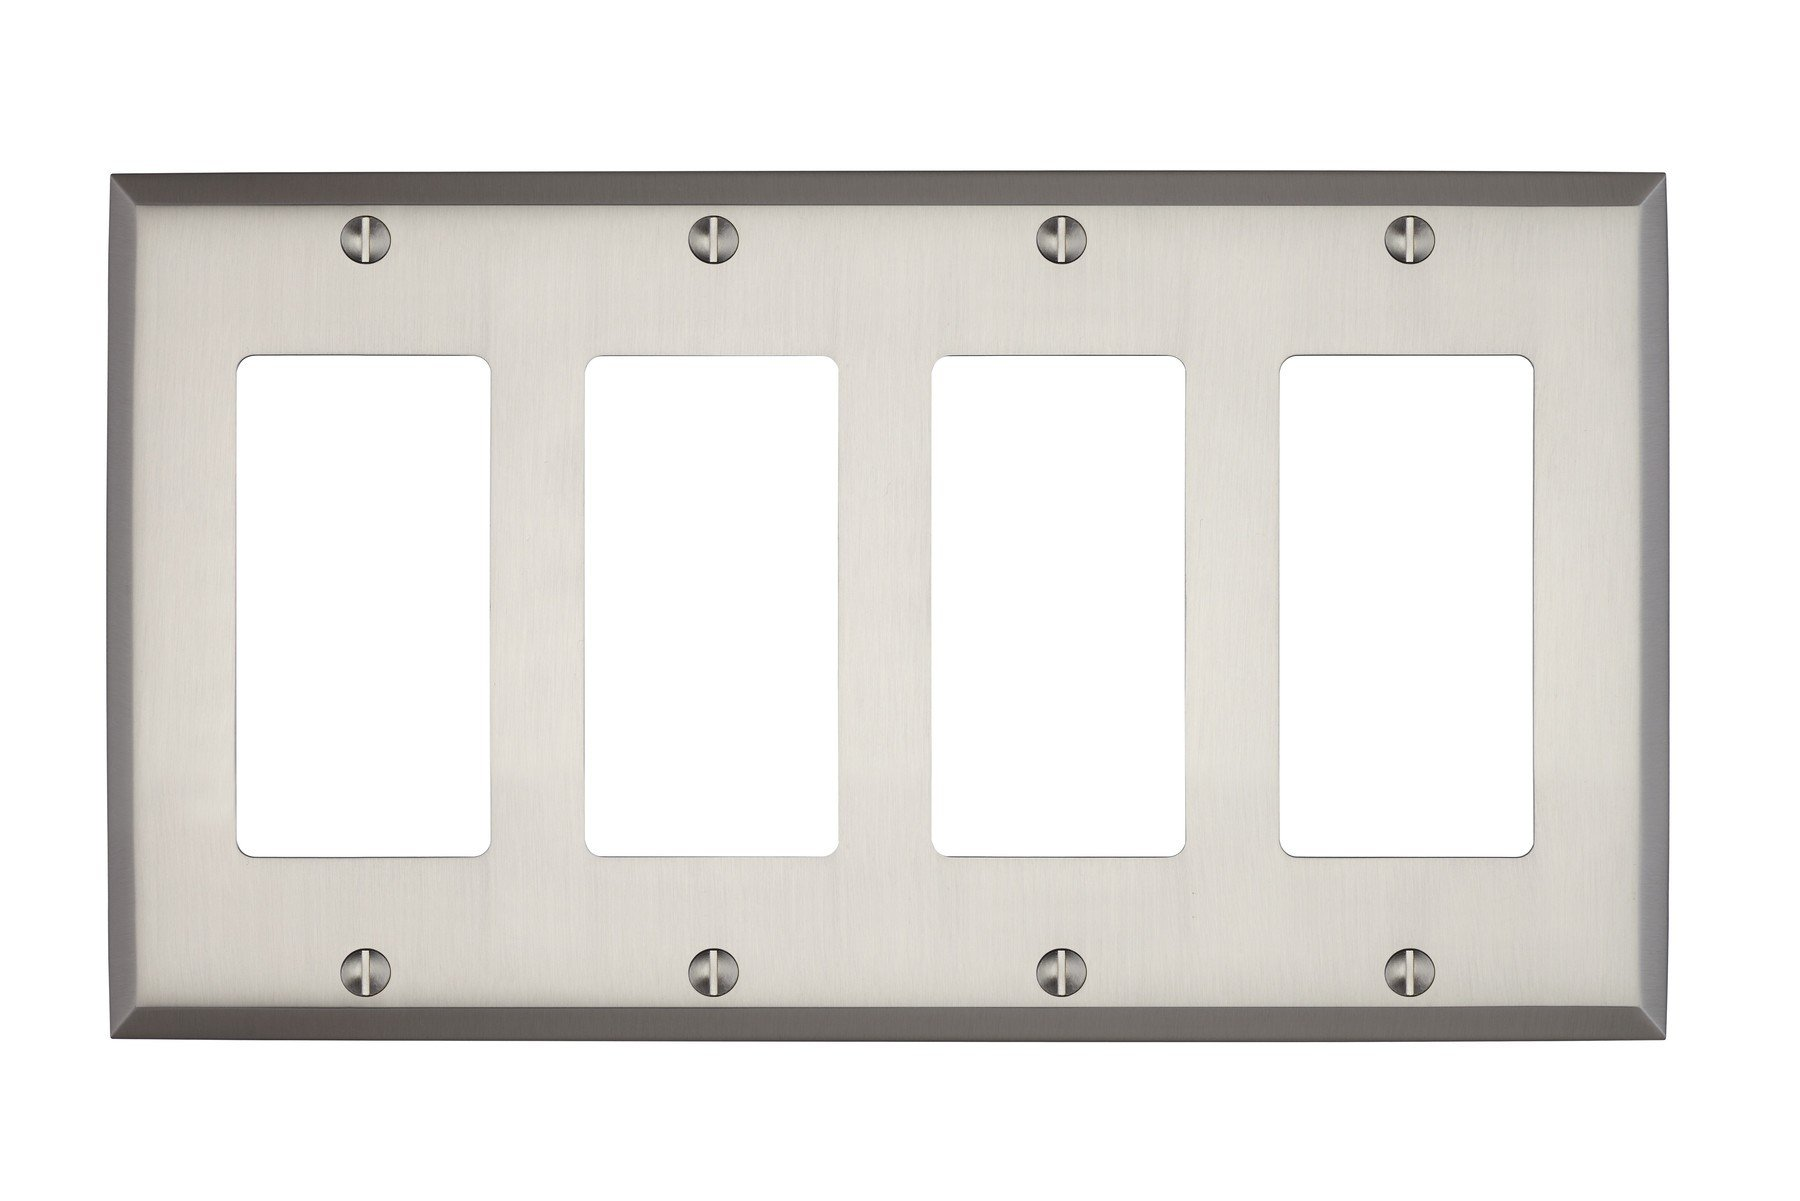 MAYKKE Graham Quad Rocker Light Switch Cover   Solid Brass 4 Gang Wall Plate   5 Color Finishes to Choose From   Brushed Nickel, ALA1020403